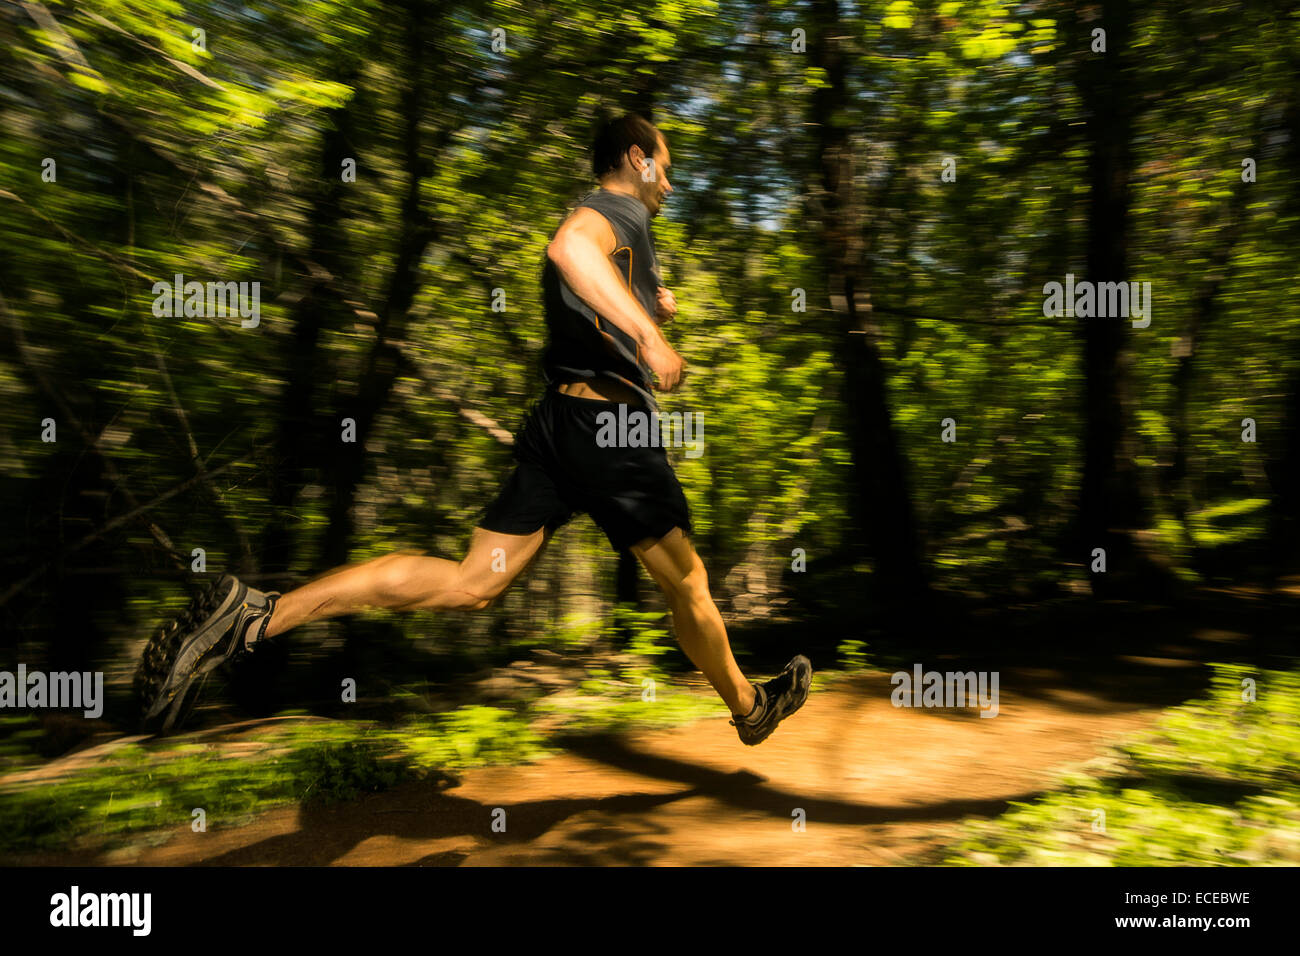 Athletic man running on trail through forest - Stock Image